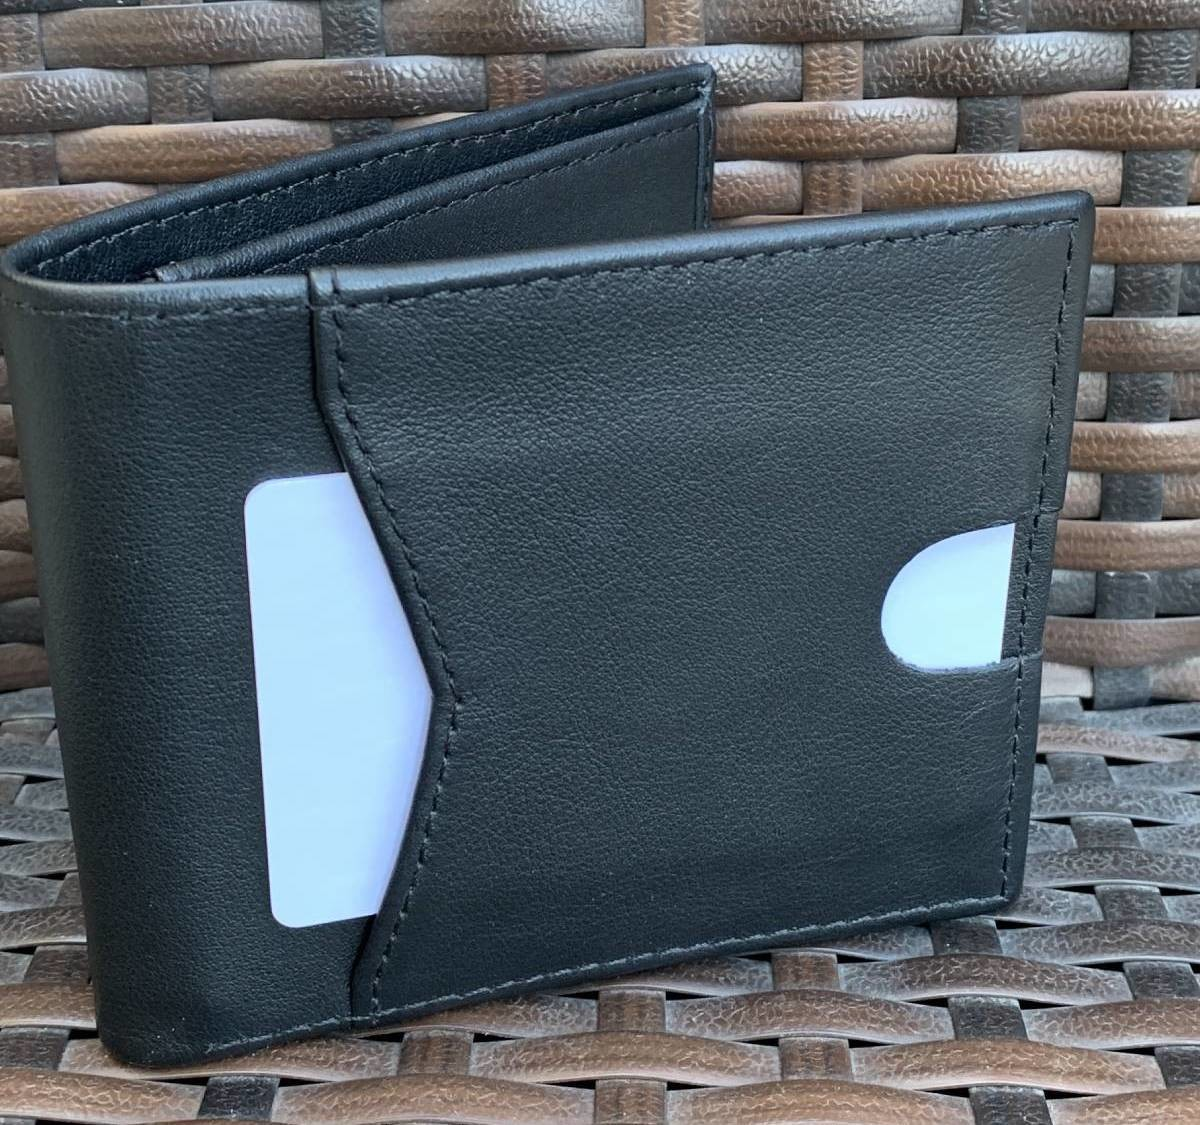 Walldram versatile wallet lets you create your own to carry exactly what you need